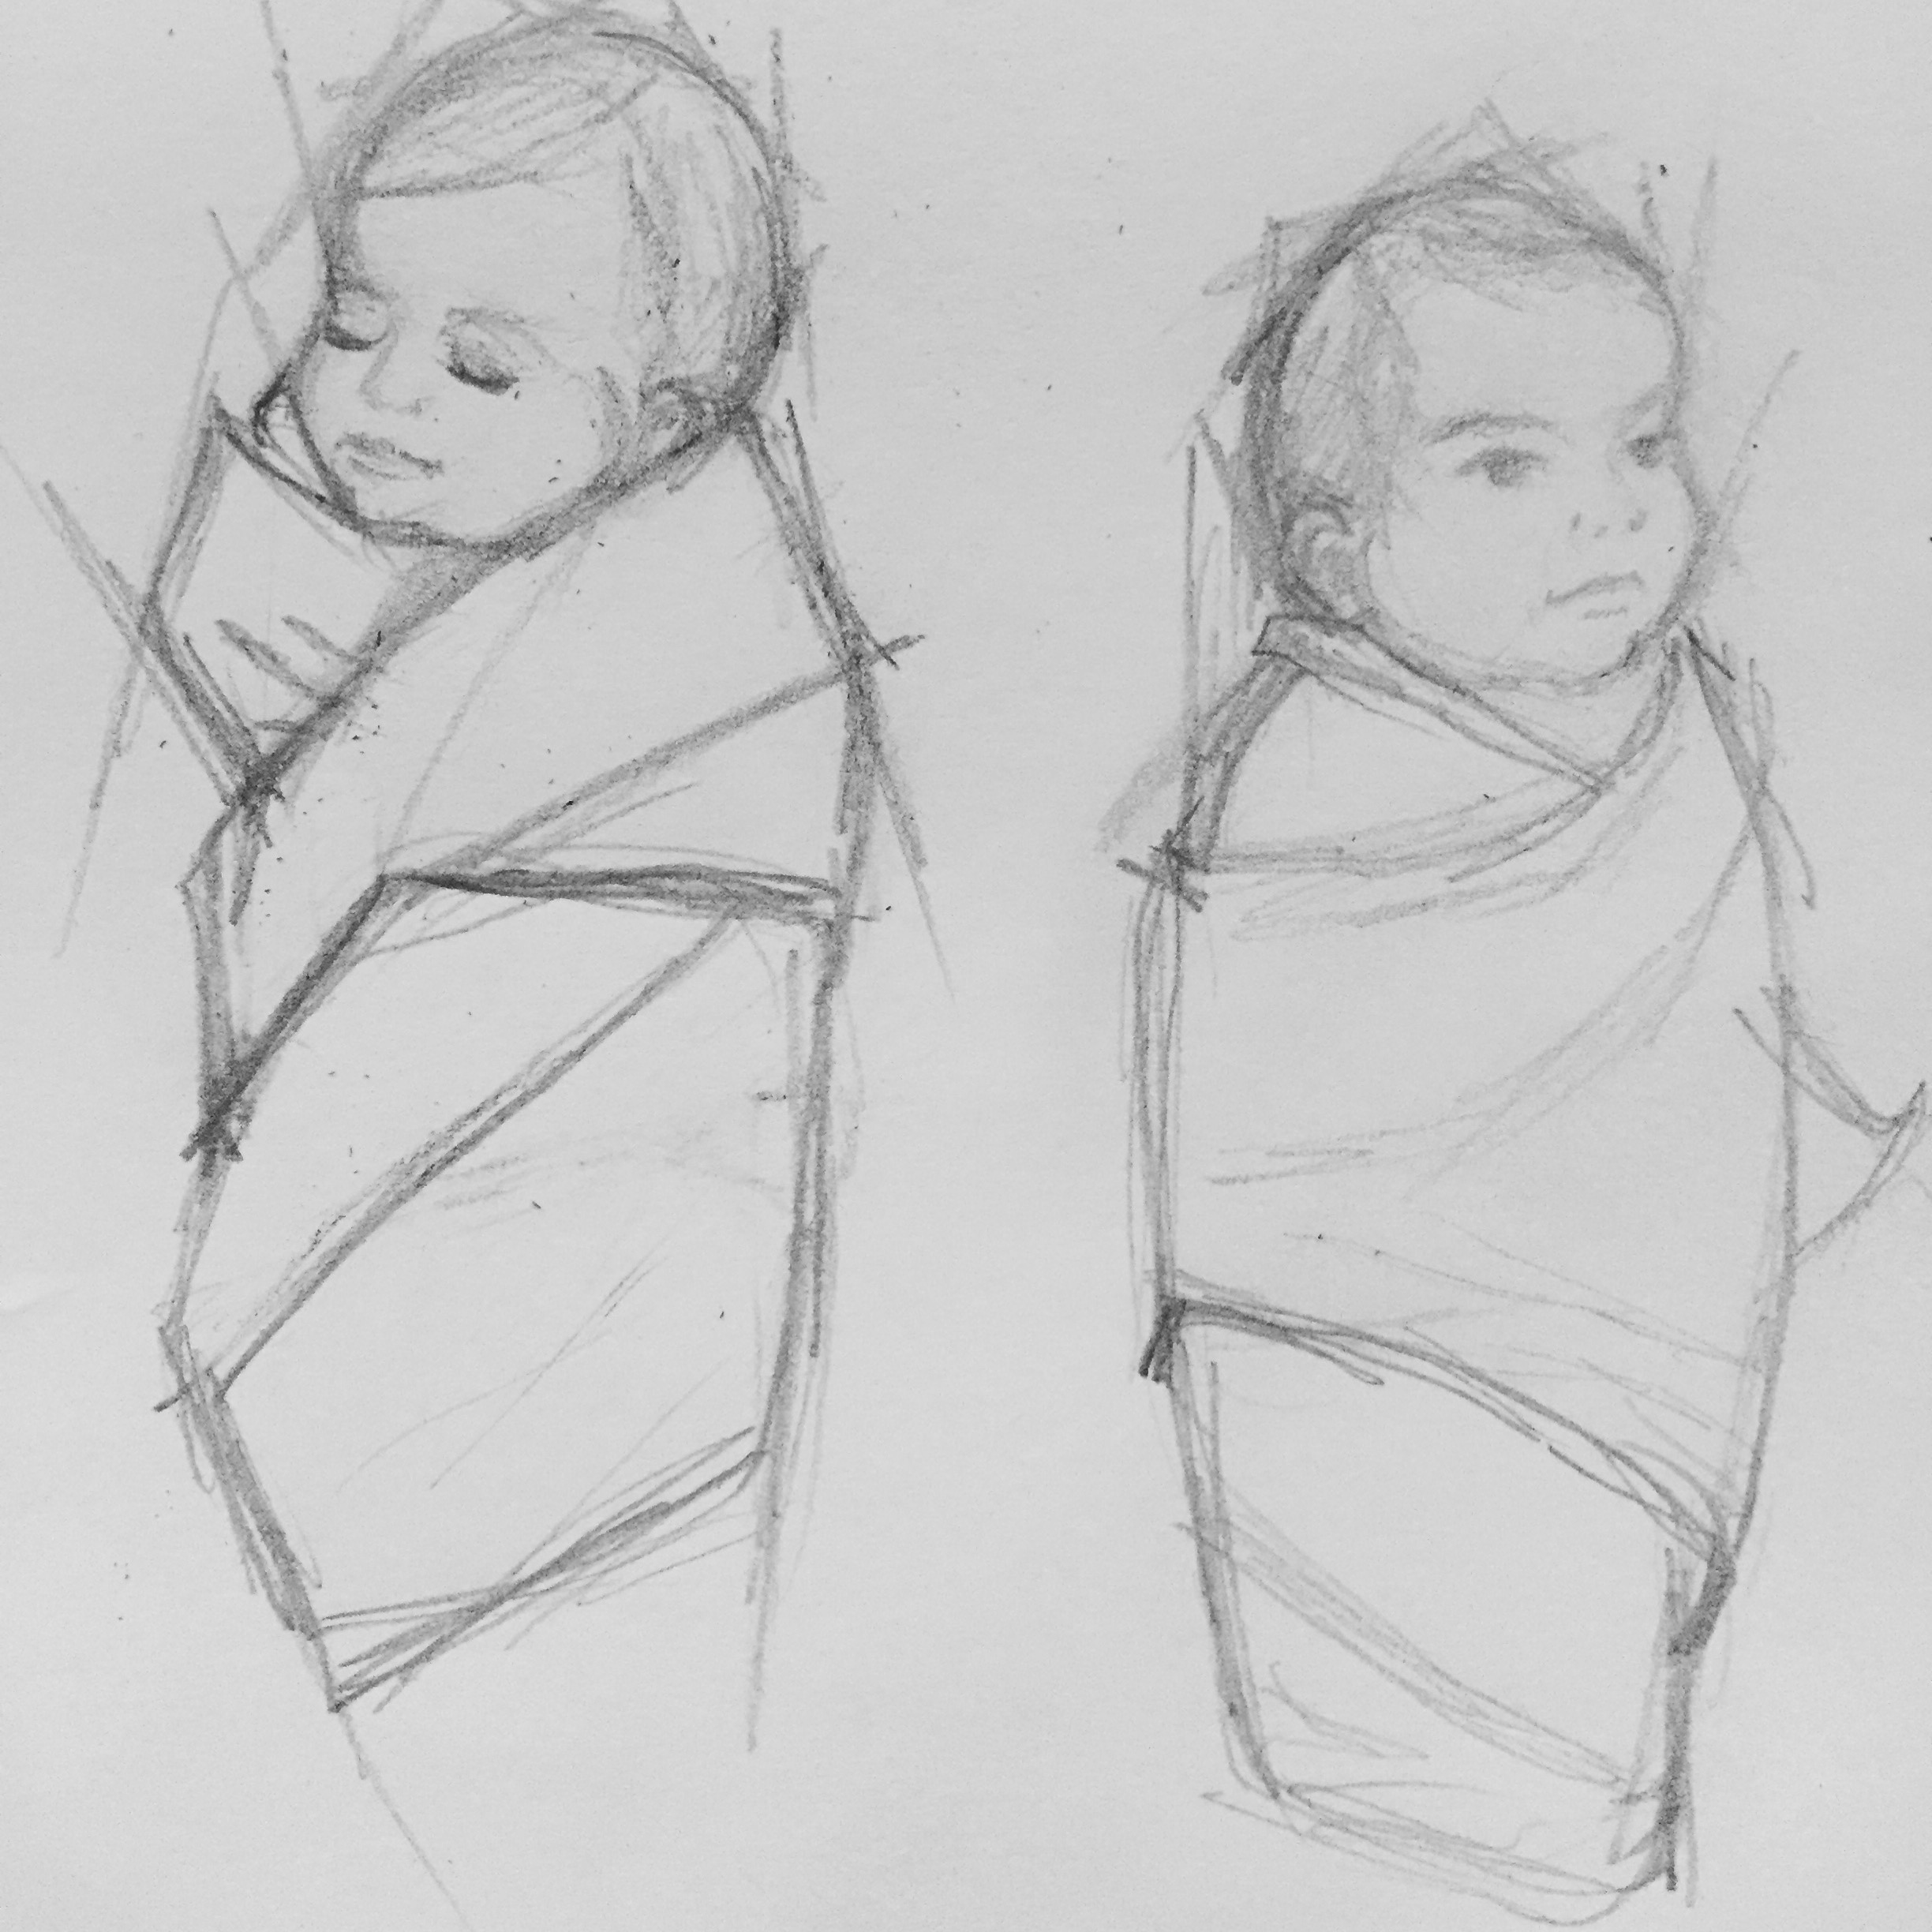 A sketch of babies swaddled in cloth.